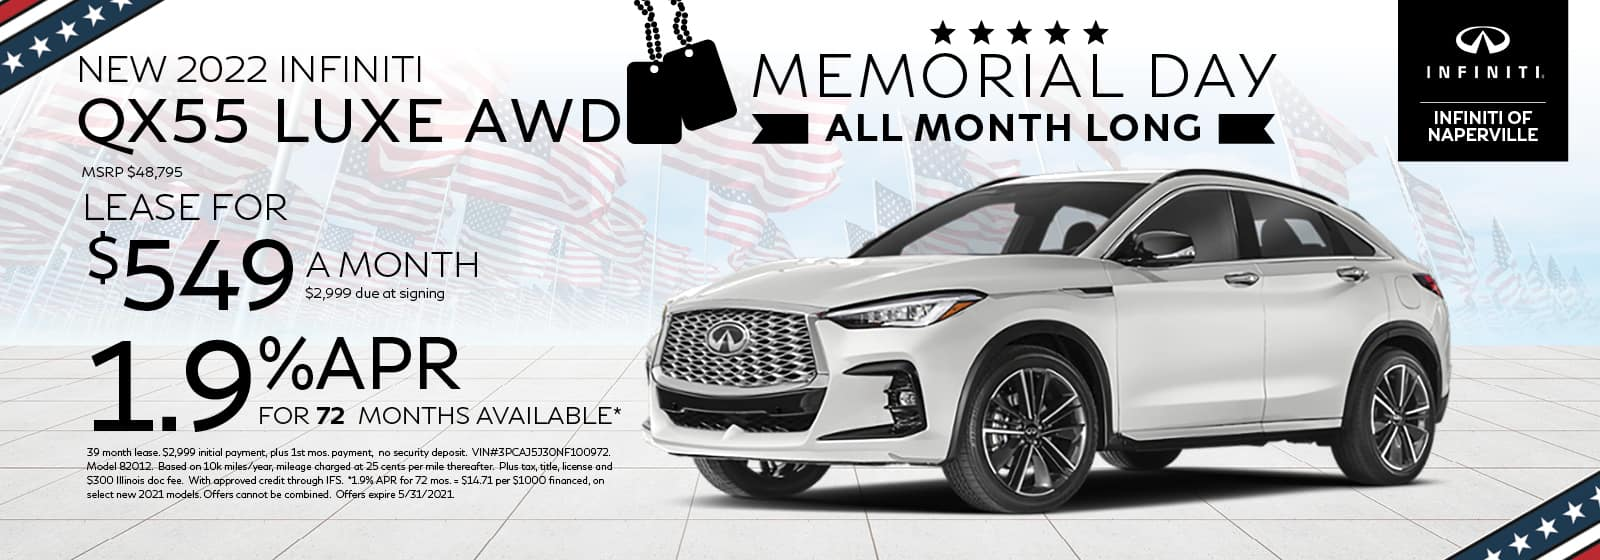 2022 INFINITI QX55 Lease or Finance Offer | INFINITI of Naperville